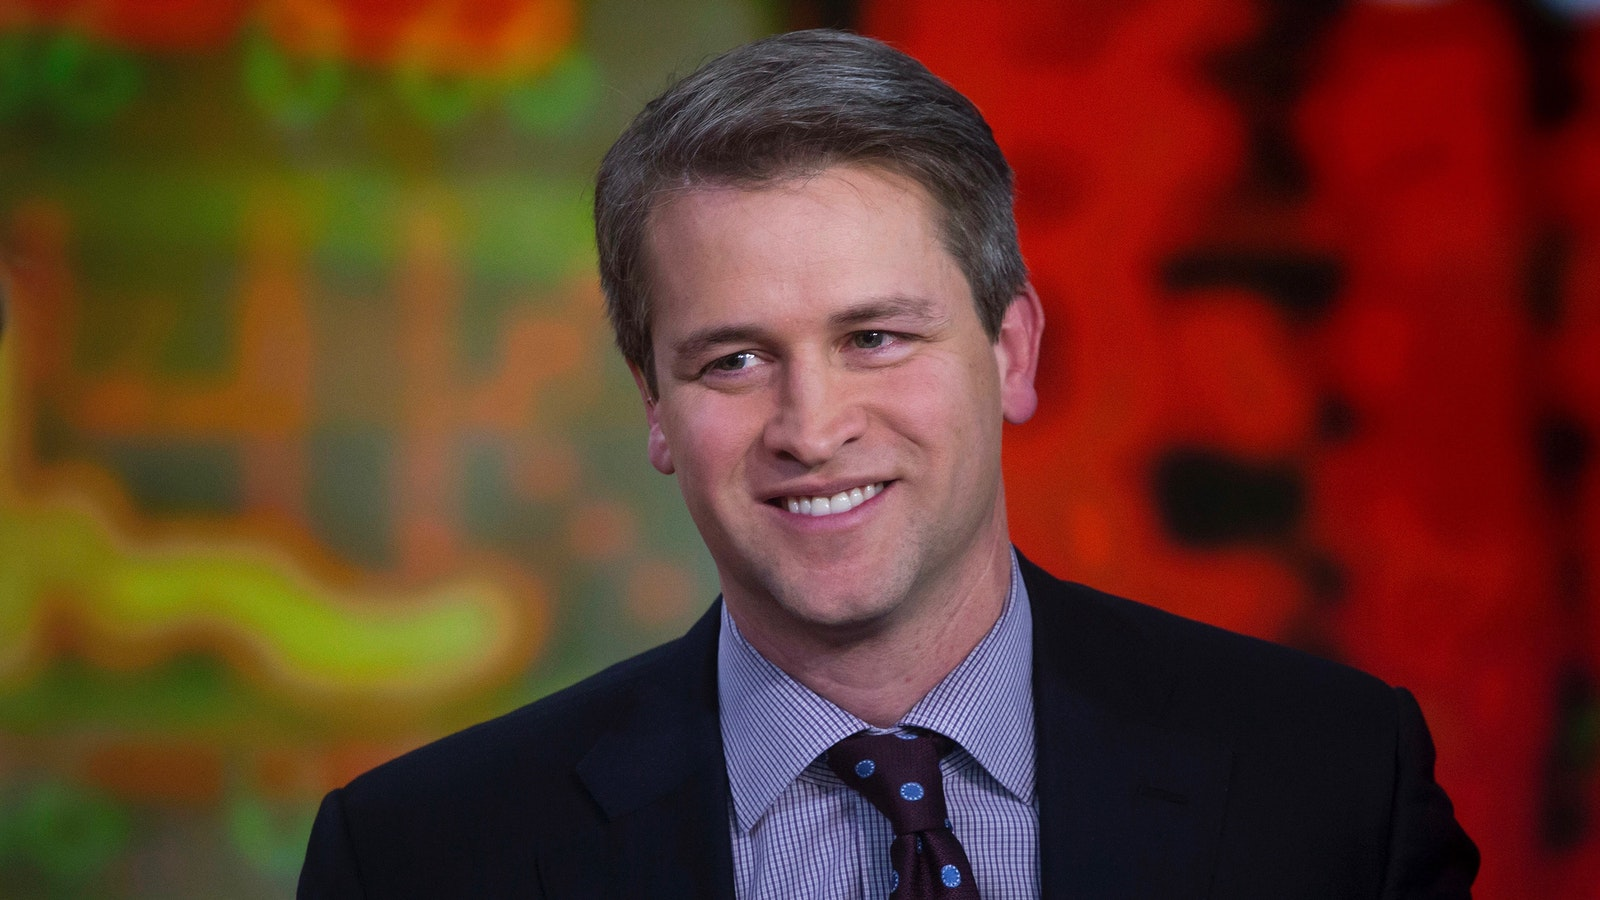 Jason Mudrick, founder of Mudrick Capital Management, a director and part owner of Dex Media. Photo by Bloomberg.